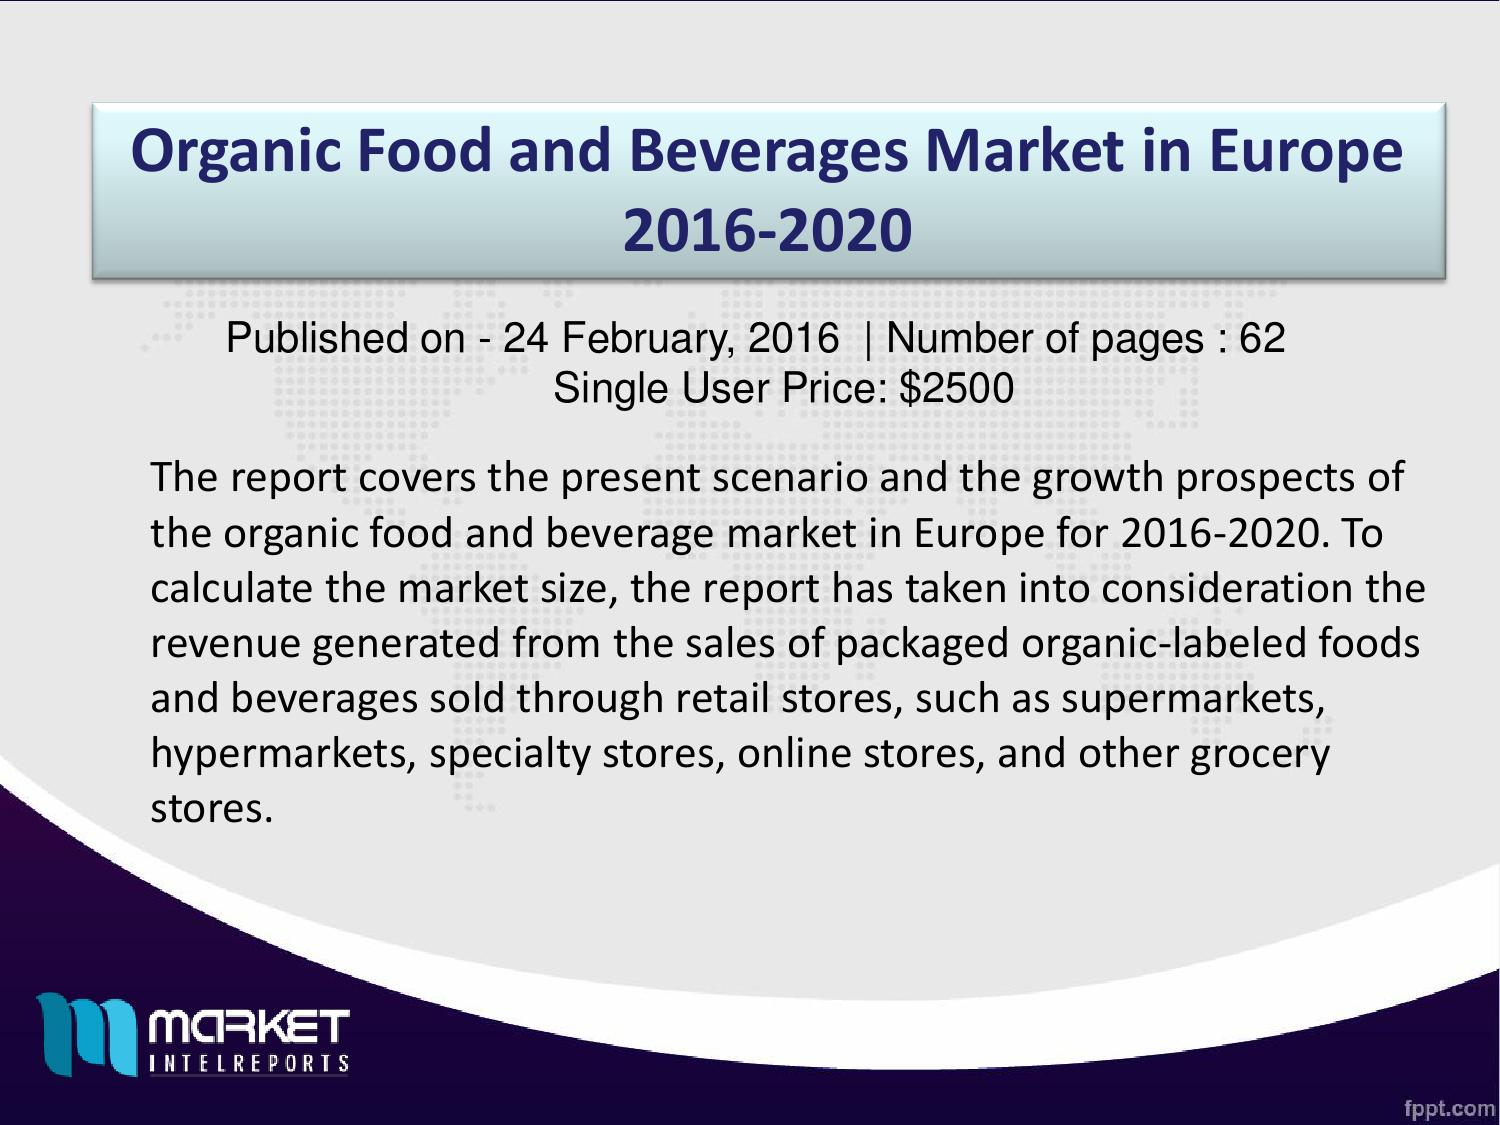 Key Factors for Organic Food and Beverages Market Growth in